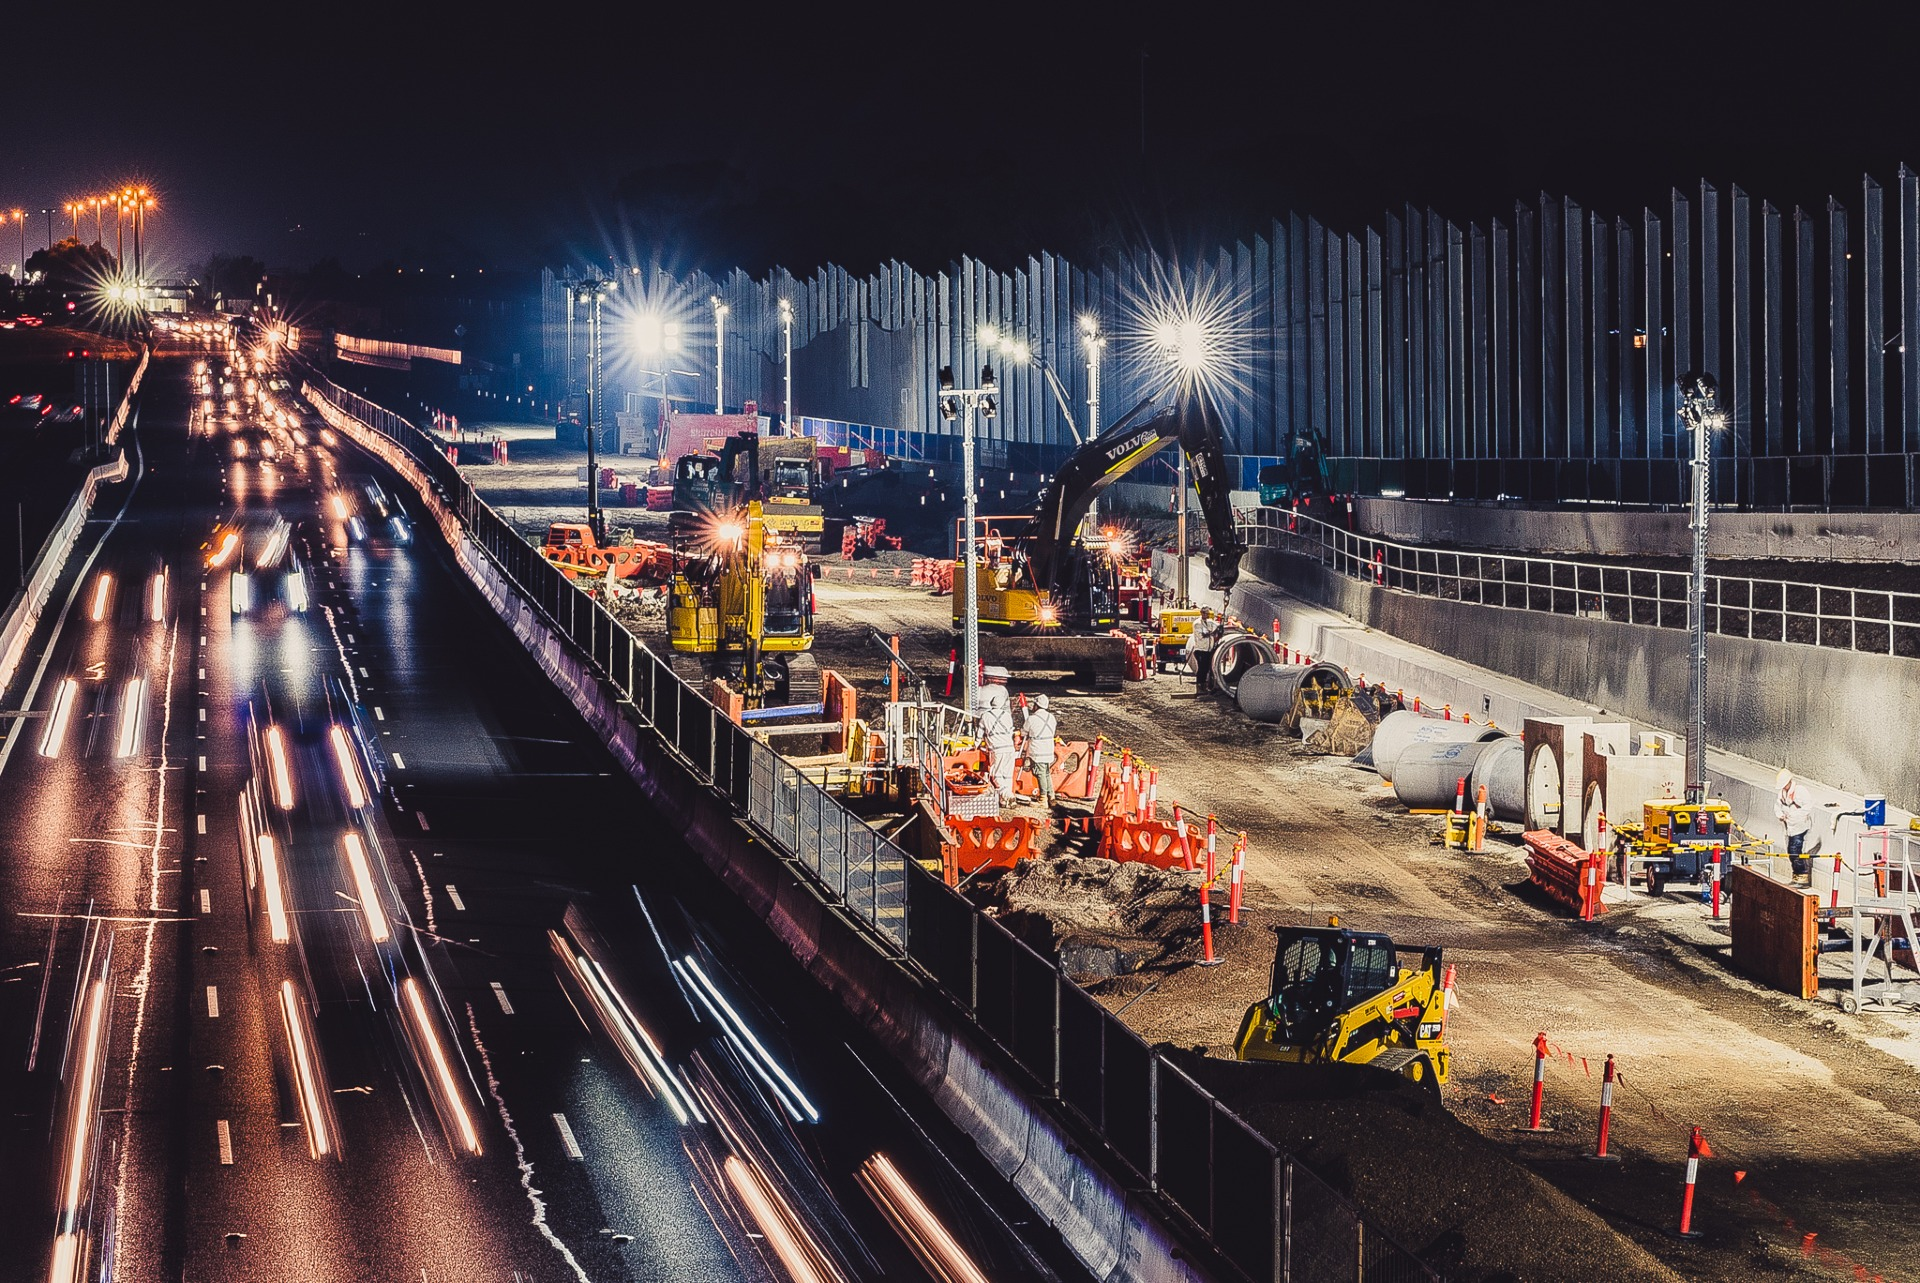 Construction at night under lights